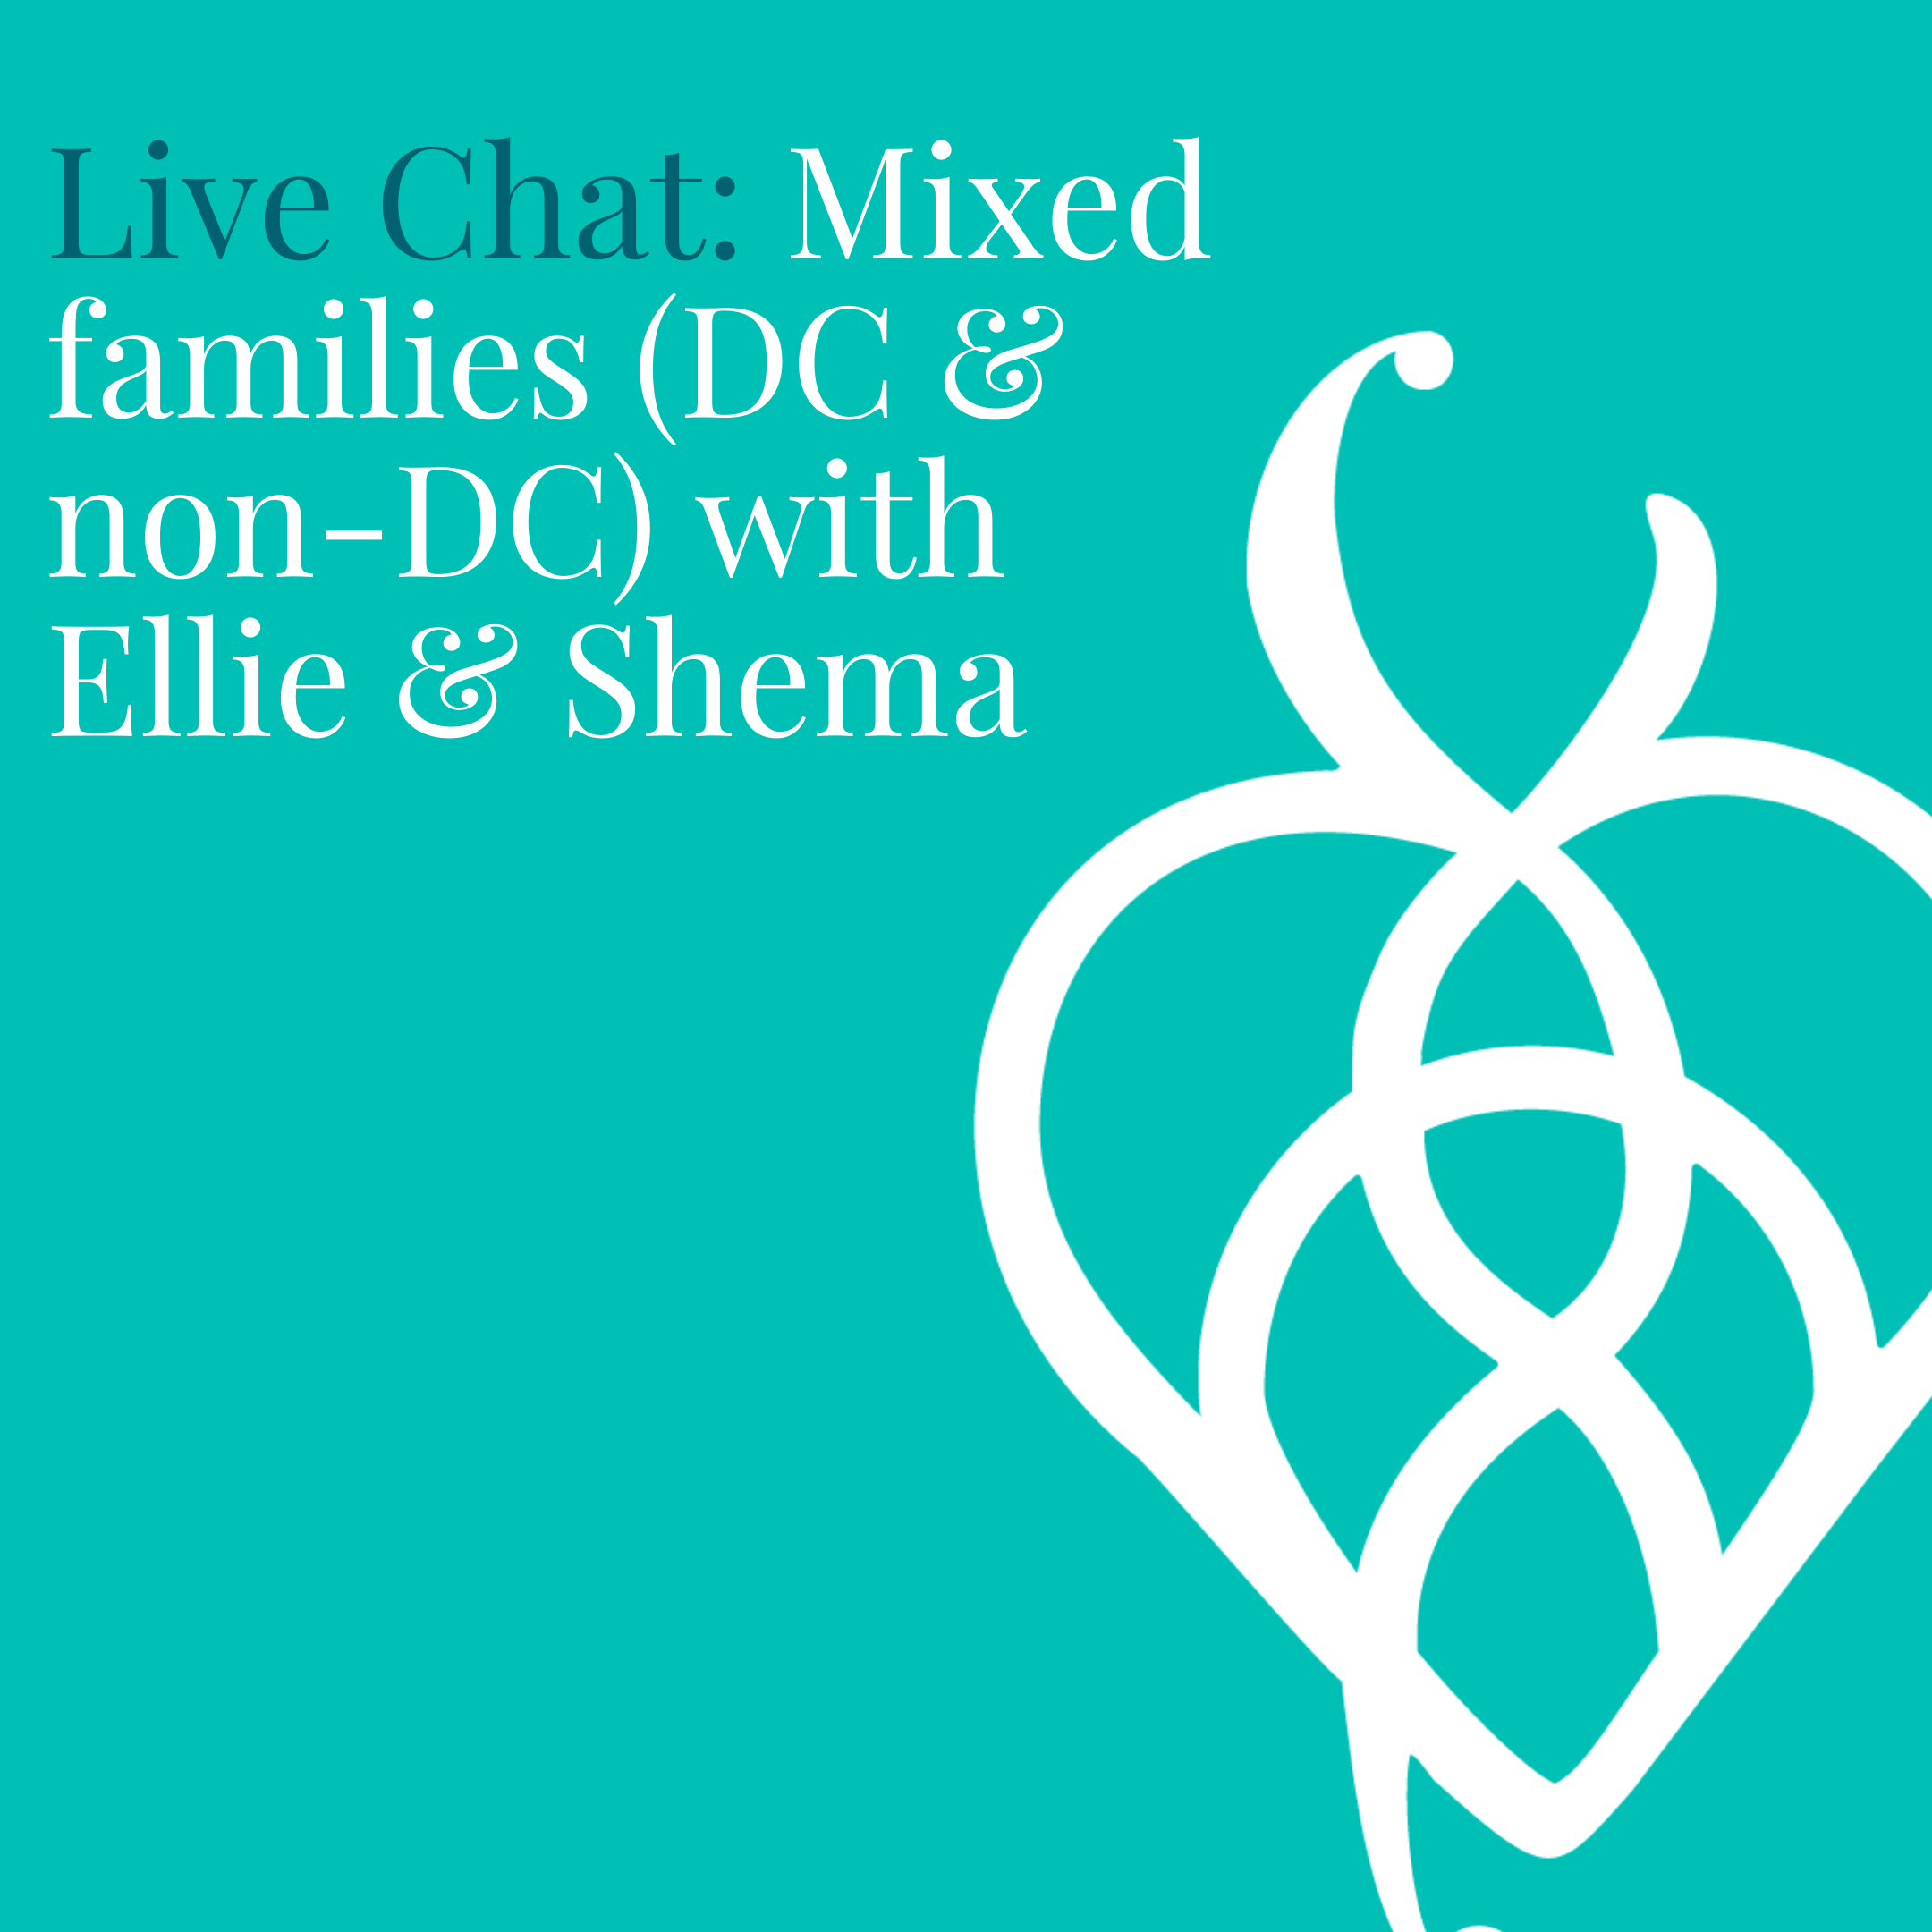 Mixed families (DC & non-DC) with Ellie & Shema